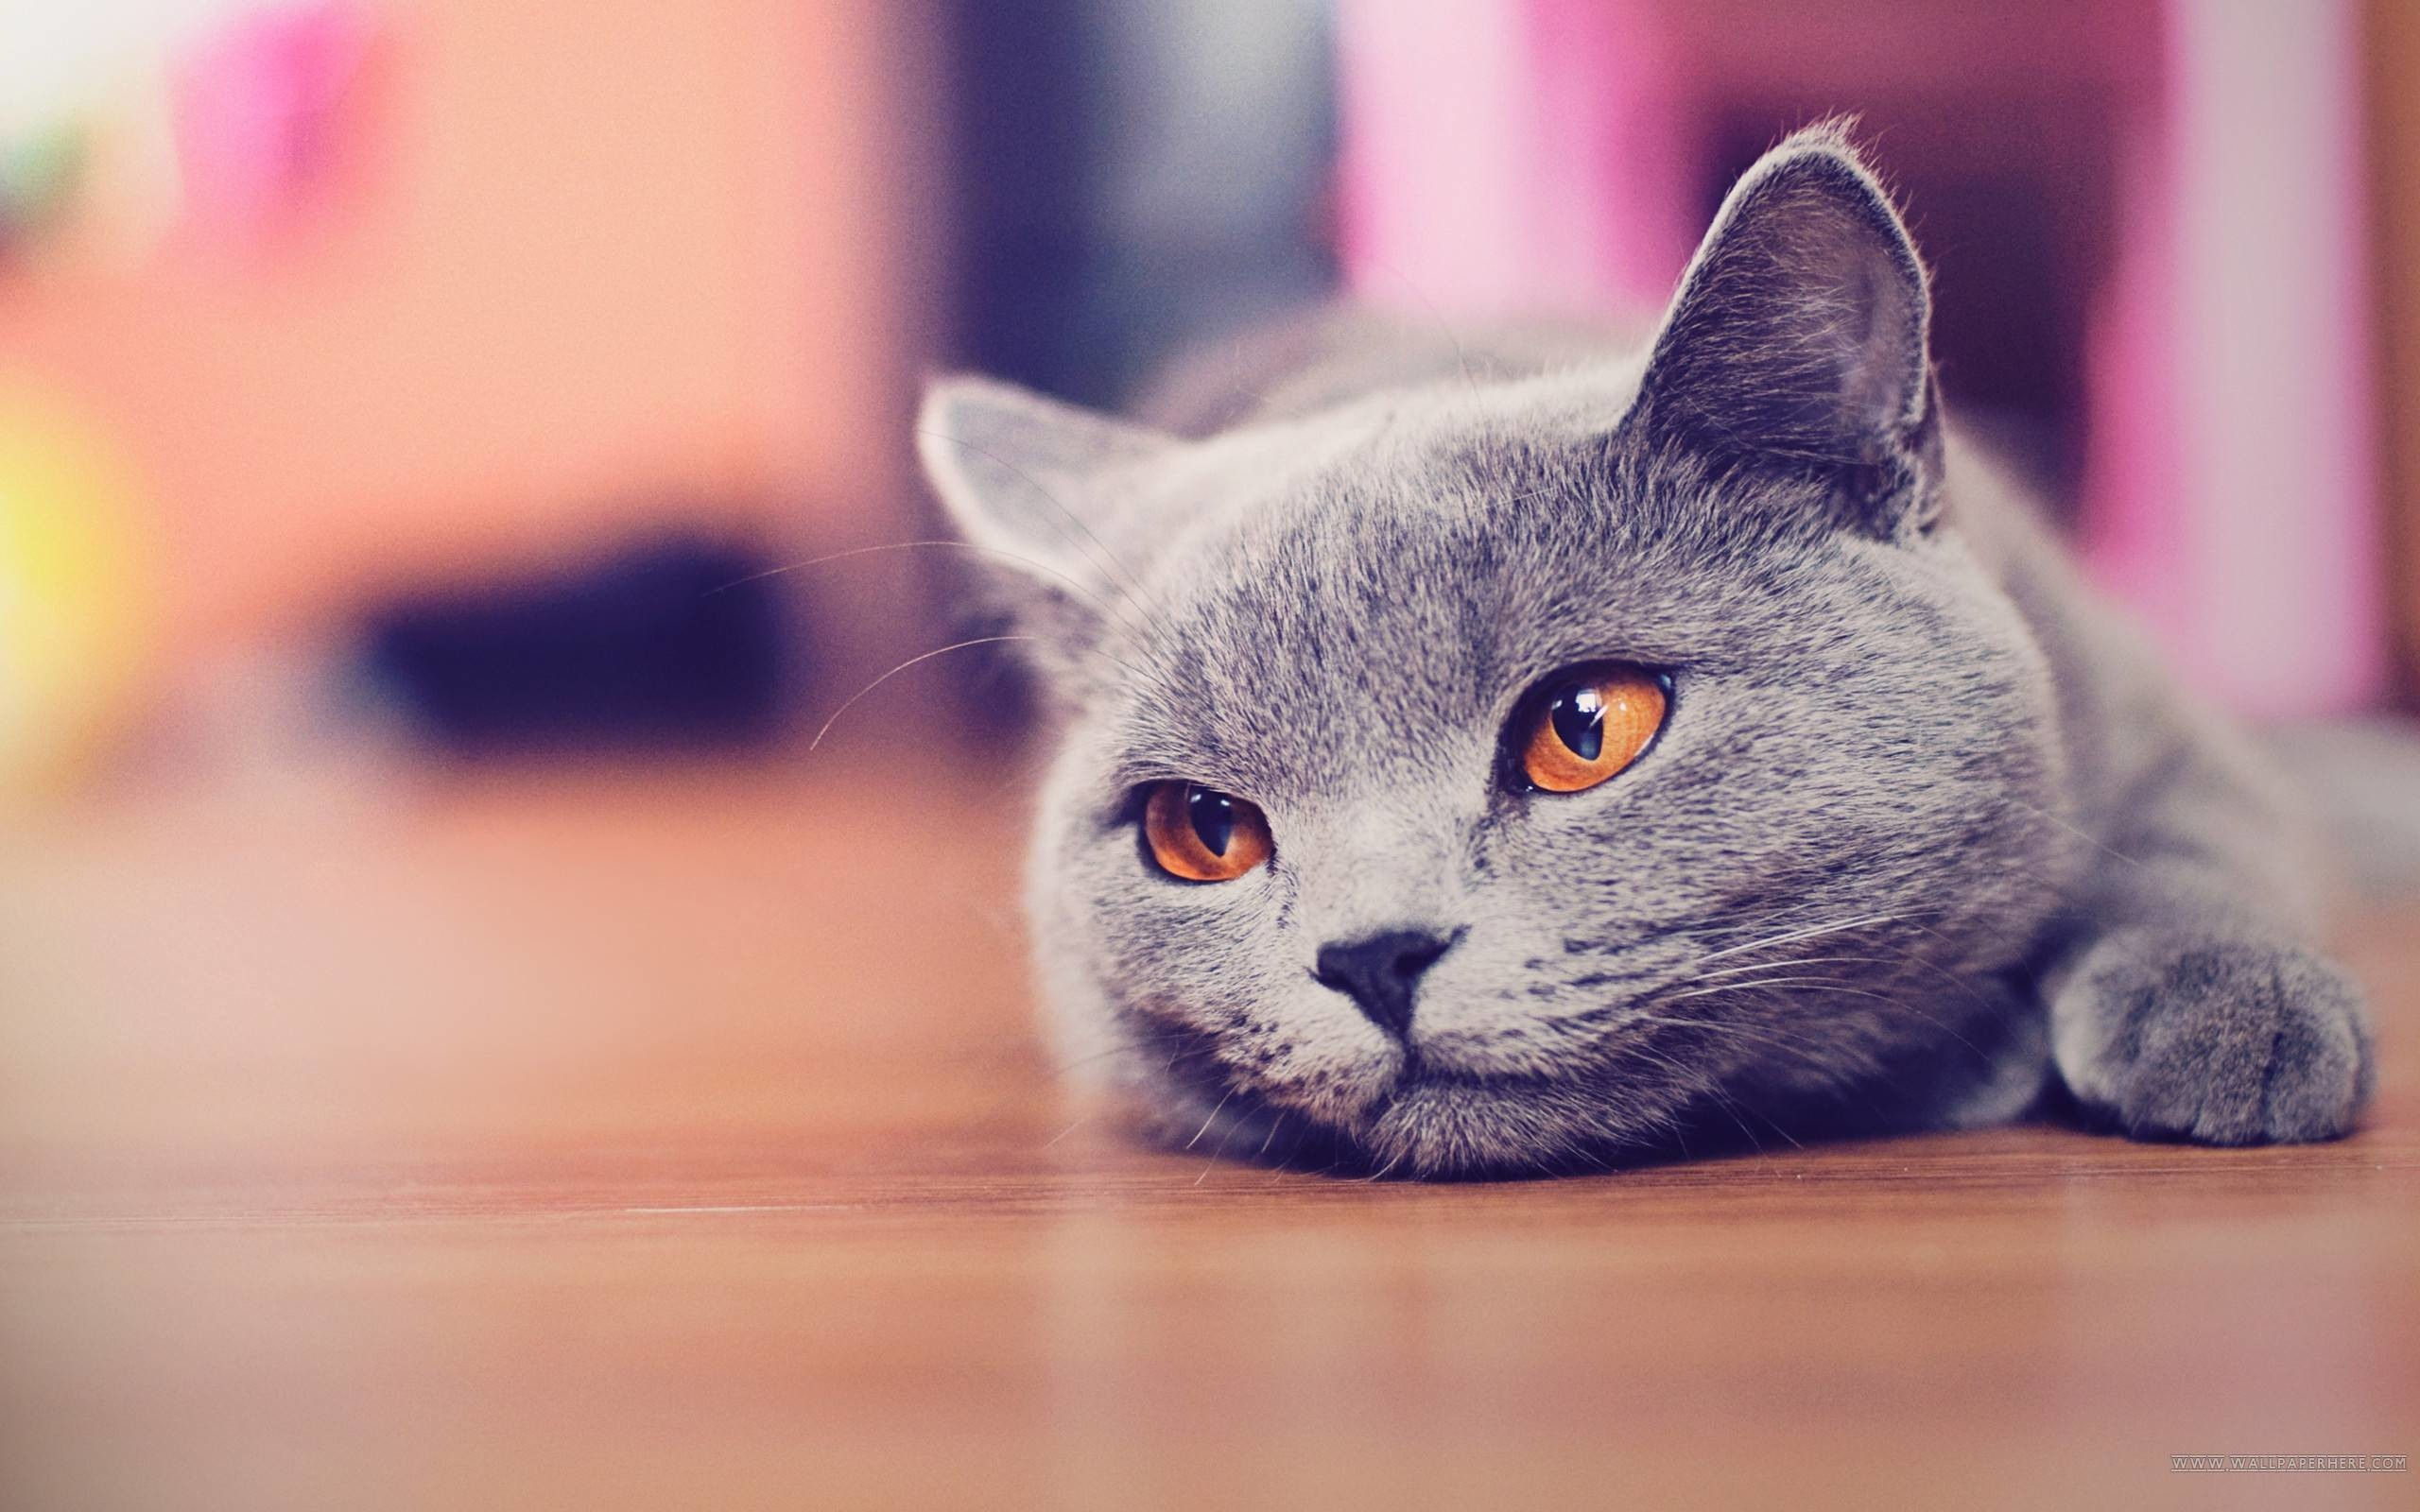 cute cat wallpapers for desktop (66+ images)